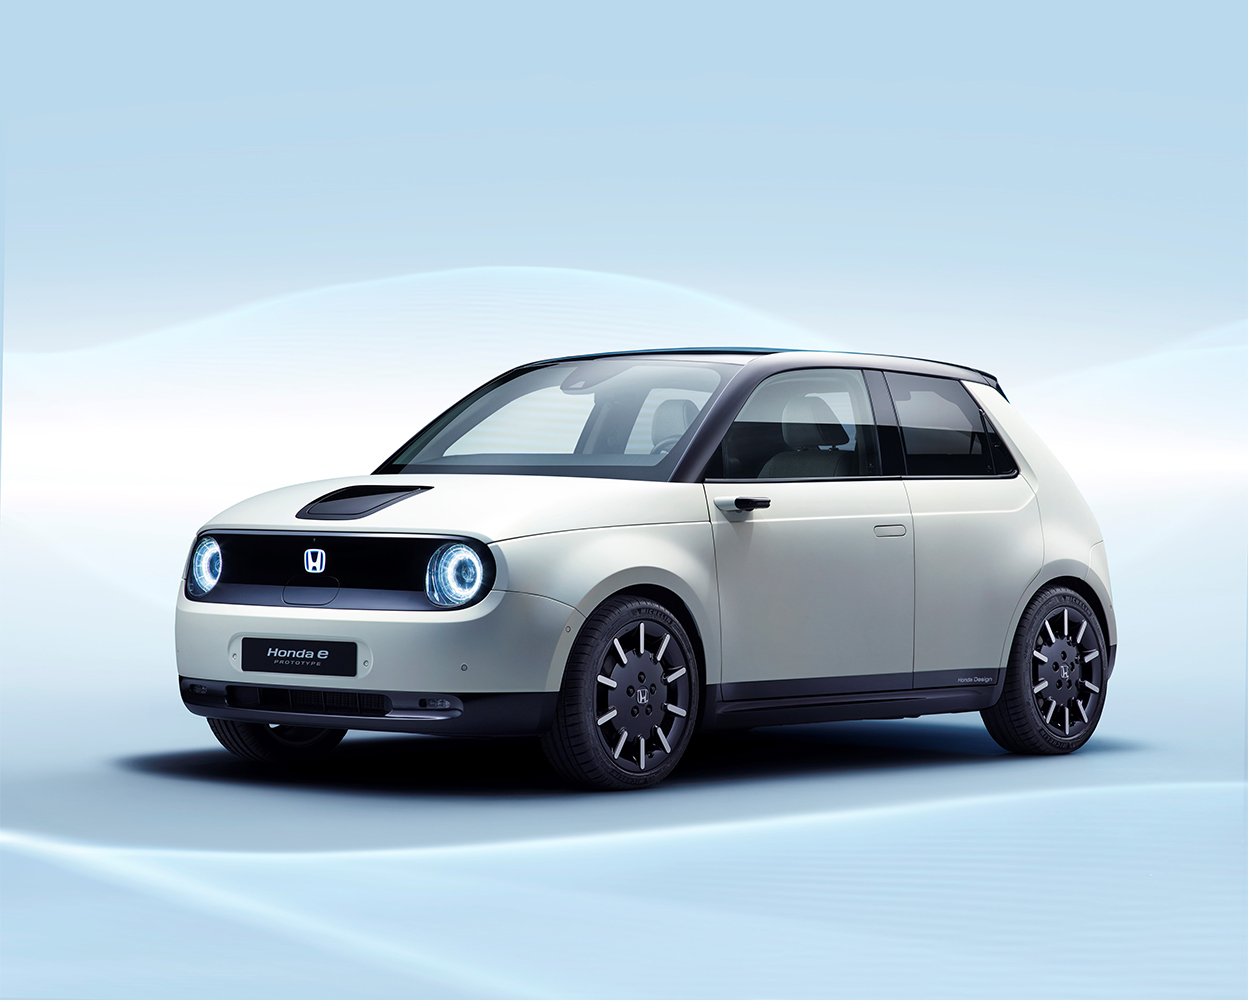 """HONDA E PROTOTYPE"" WORLD PREMIERE AT GENEVA INTERNATIONAL MOTORSHOW 2019"